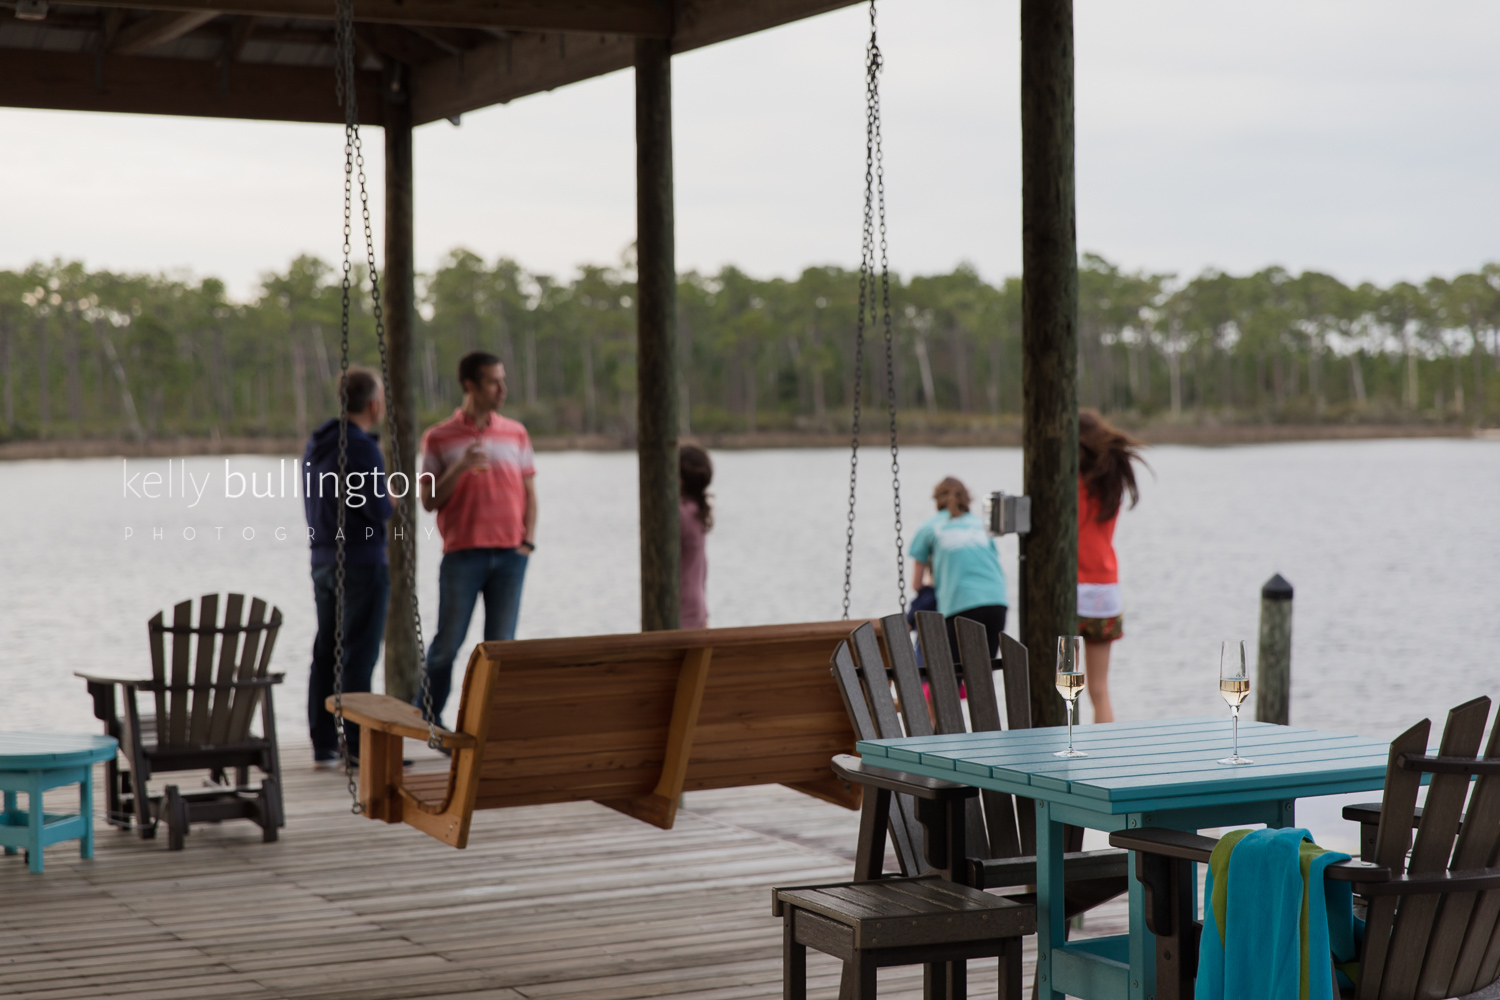 Fairhope_Family_Kelly_Bullington_Photography-9.jpg